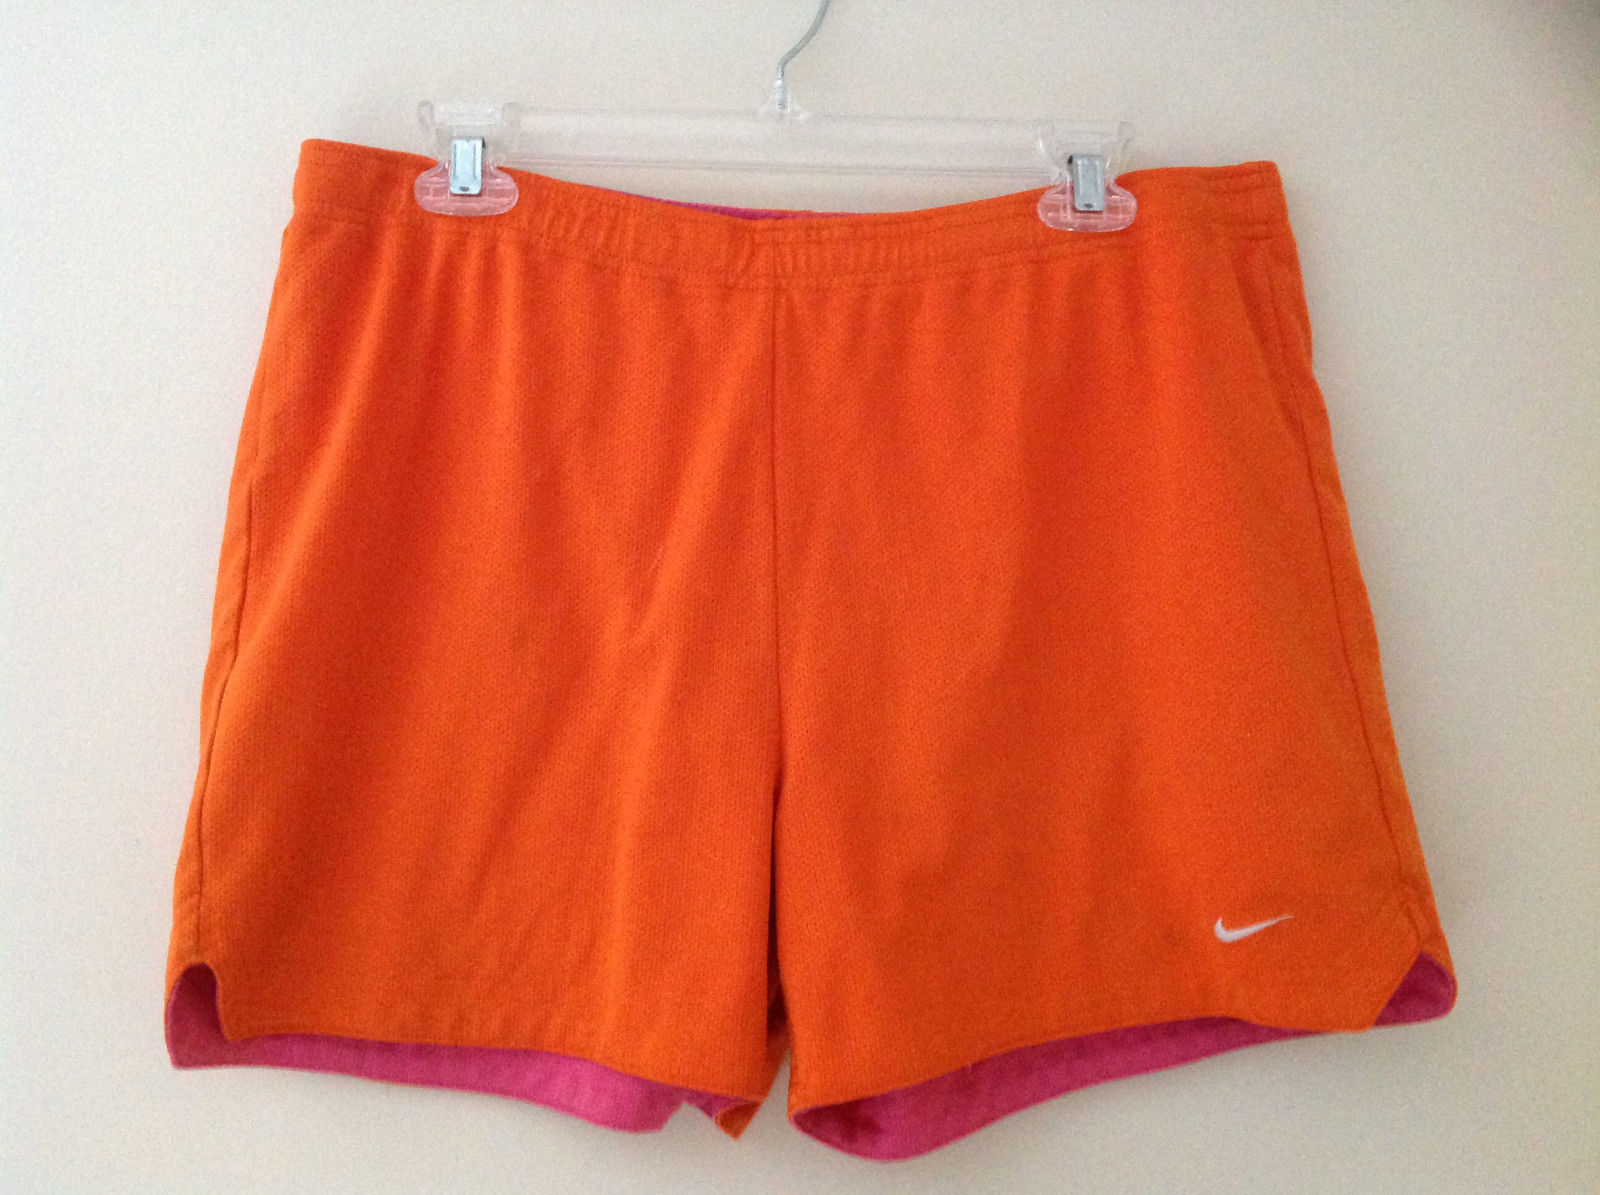 Nike Orange Pink Tie Waist Shorts Tie is on the Inside Elastic Waistband Size L